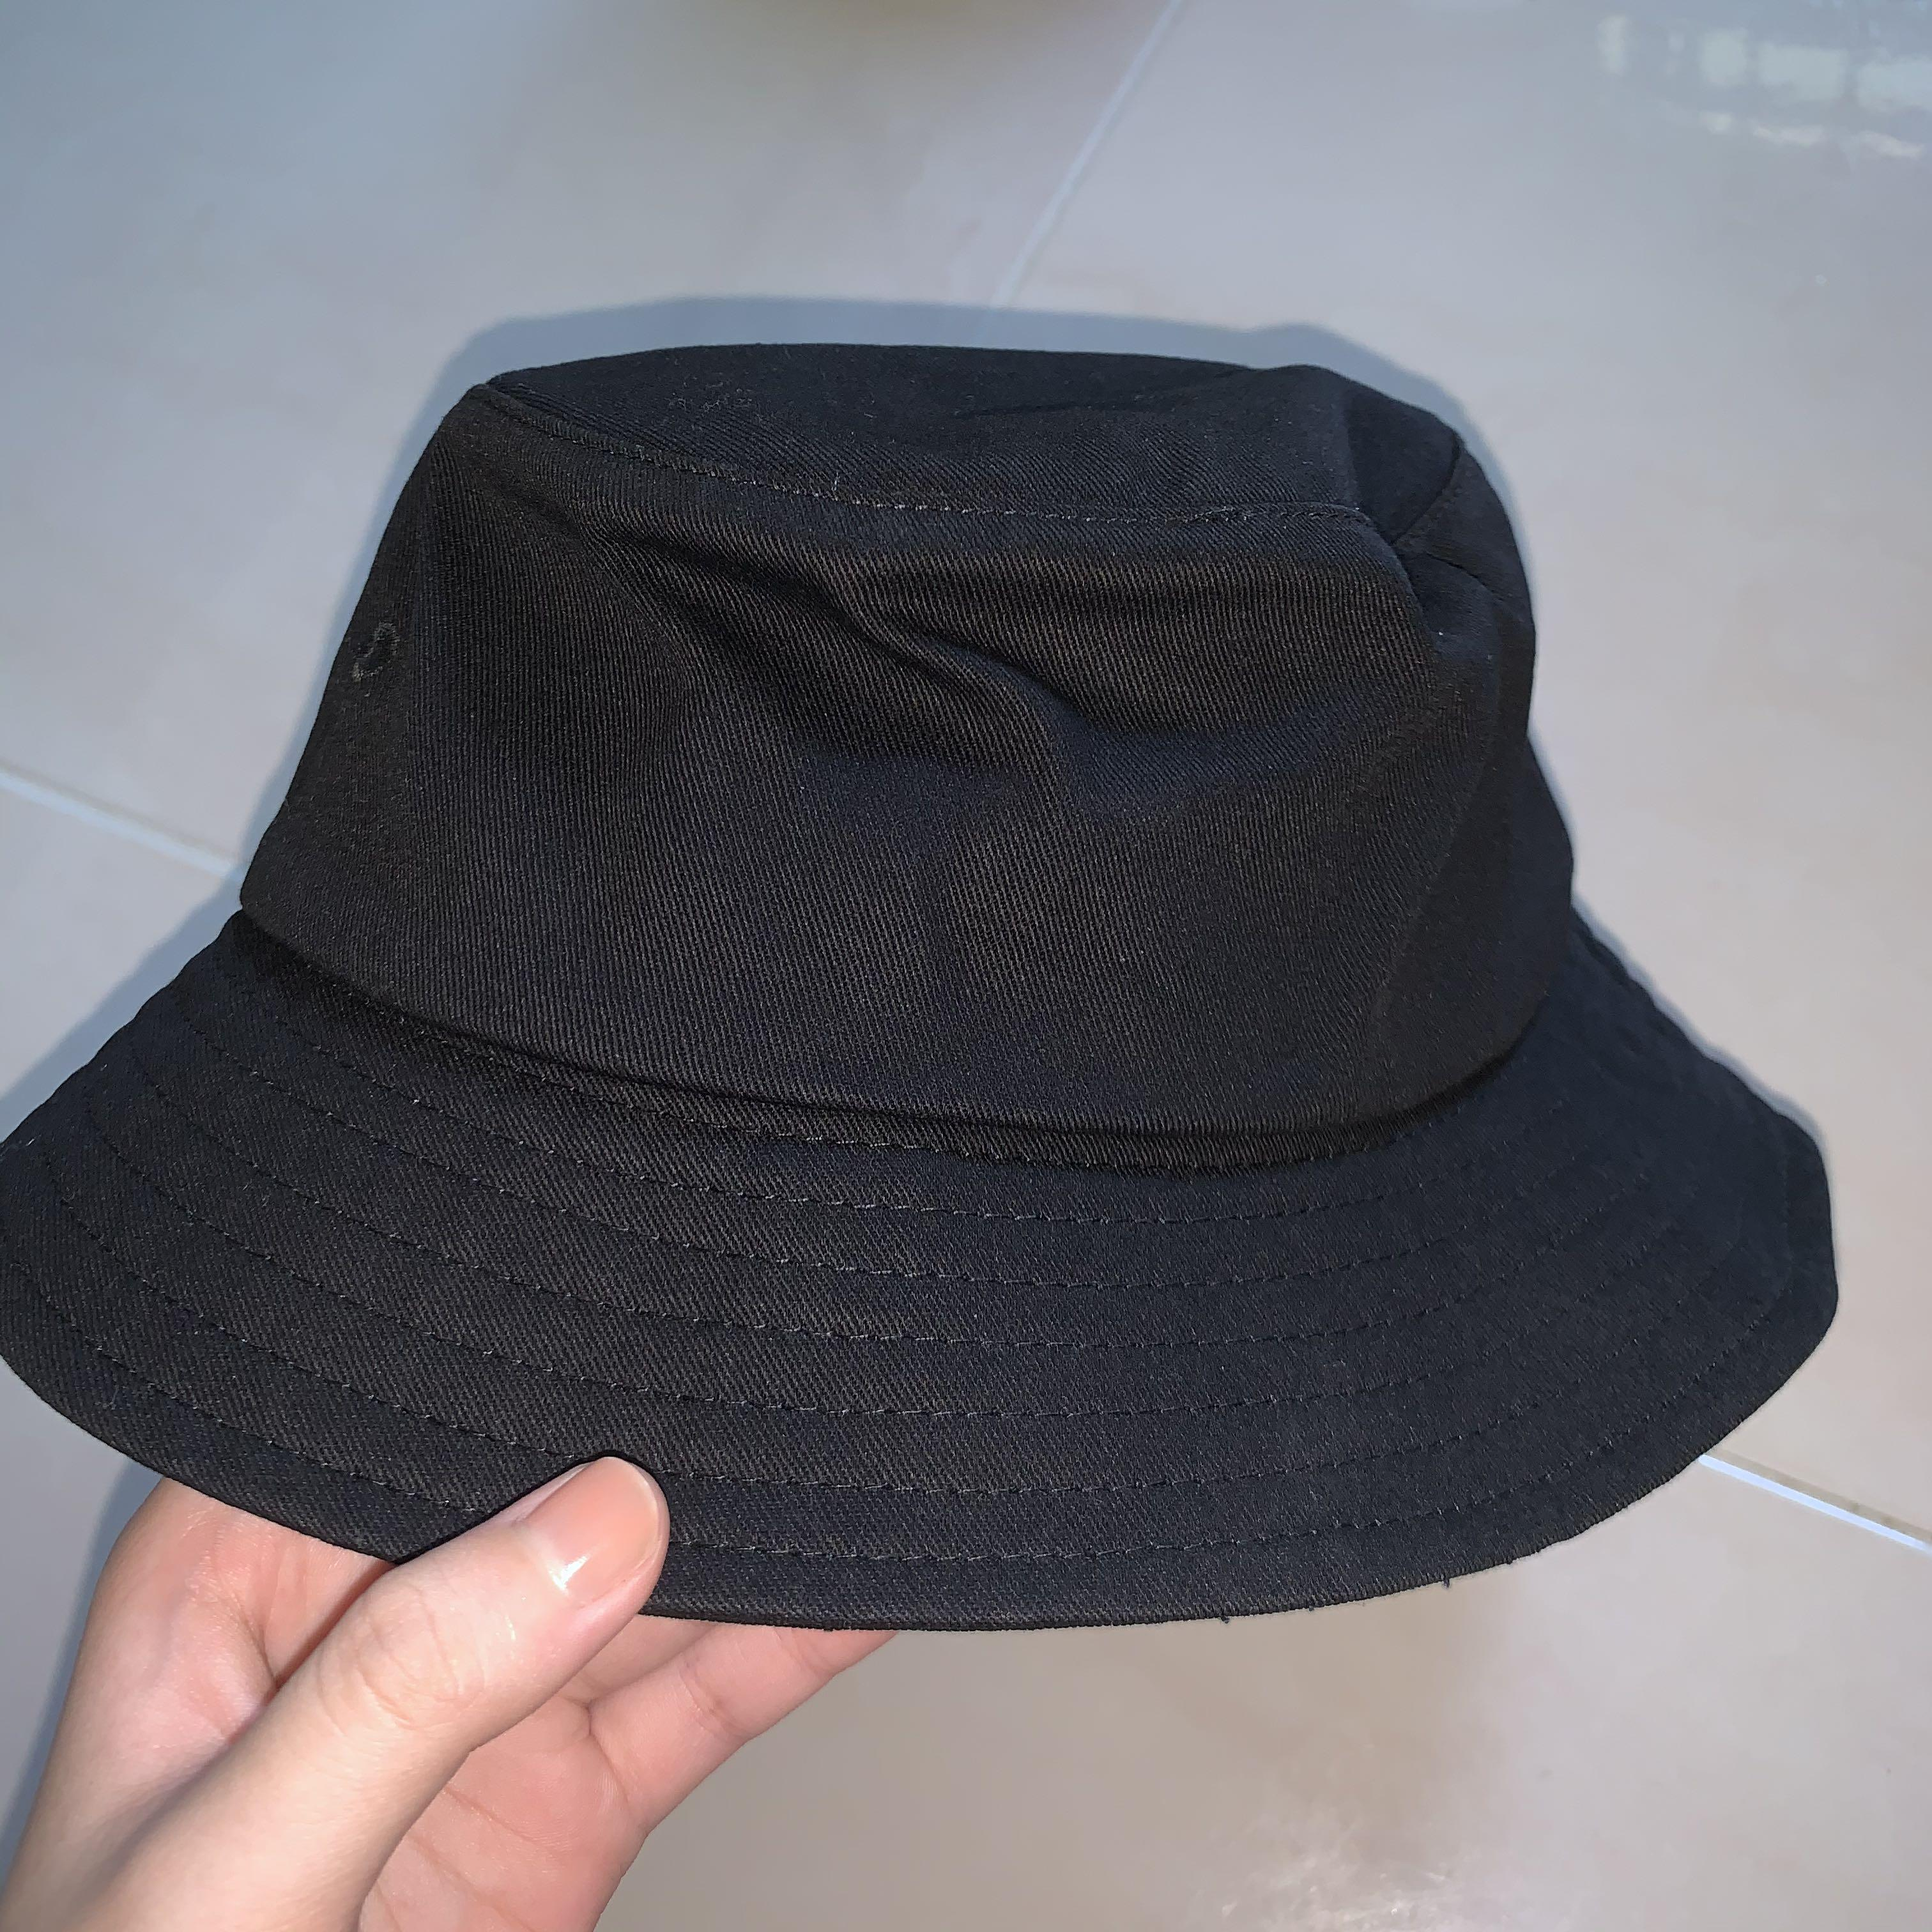 Plain Bucket Hat Black Men S Fashion Accessories Caps Hats On Carousell